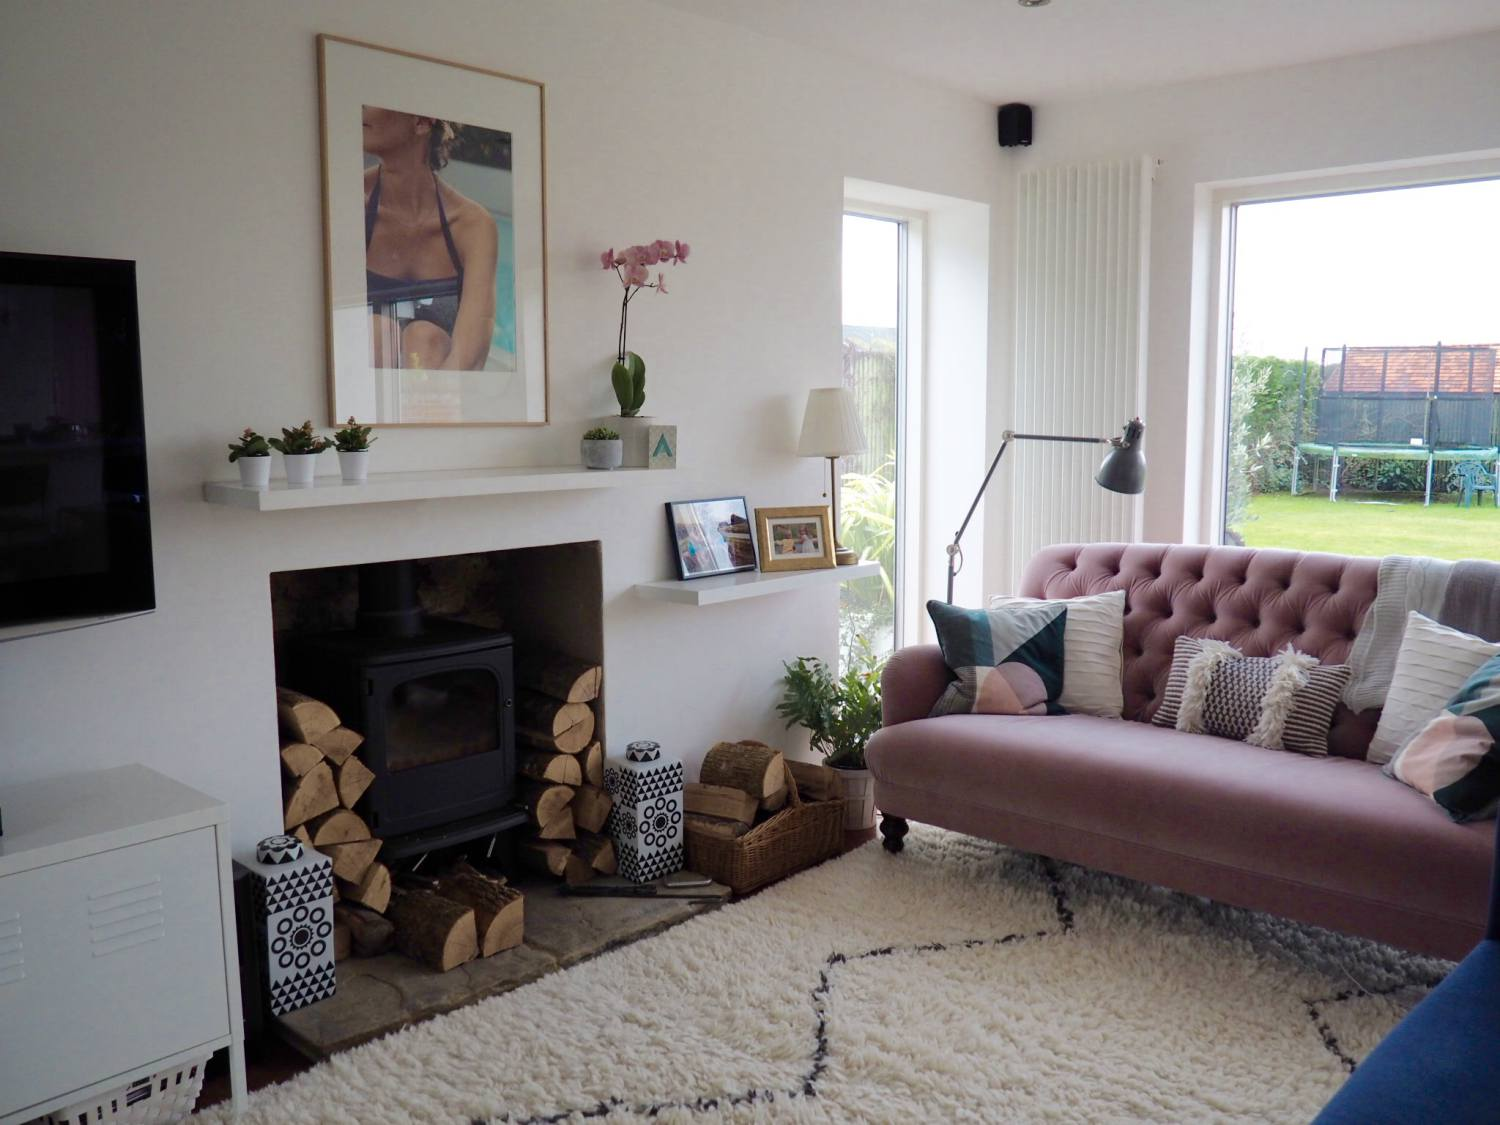 Choosing art for your home - Choosing Art For Your Home Being Able To See The Art In Situ Before I Bought And Hung It Really Helped Too Ok So It Would Have Only Cost 14 To Have